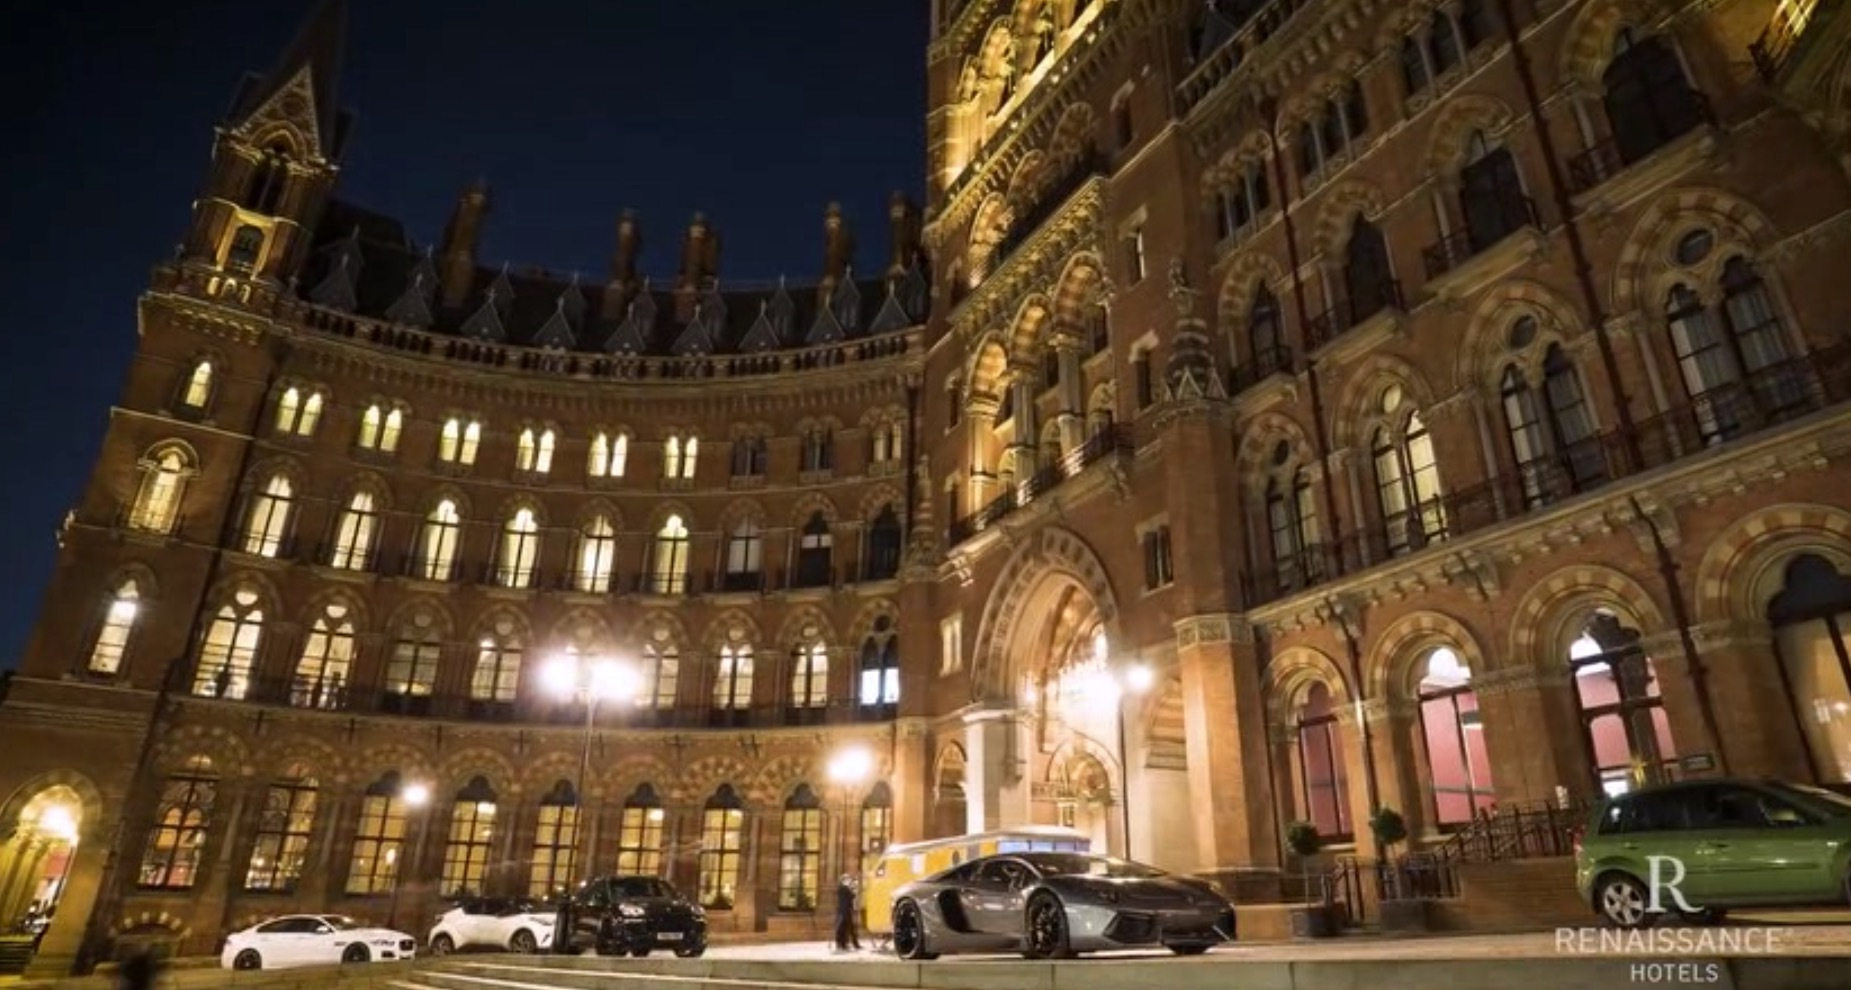 Bring The Best Of London To You With Renaissance Hotels